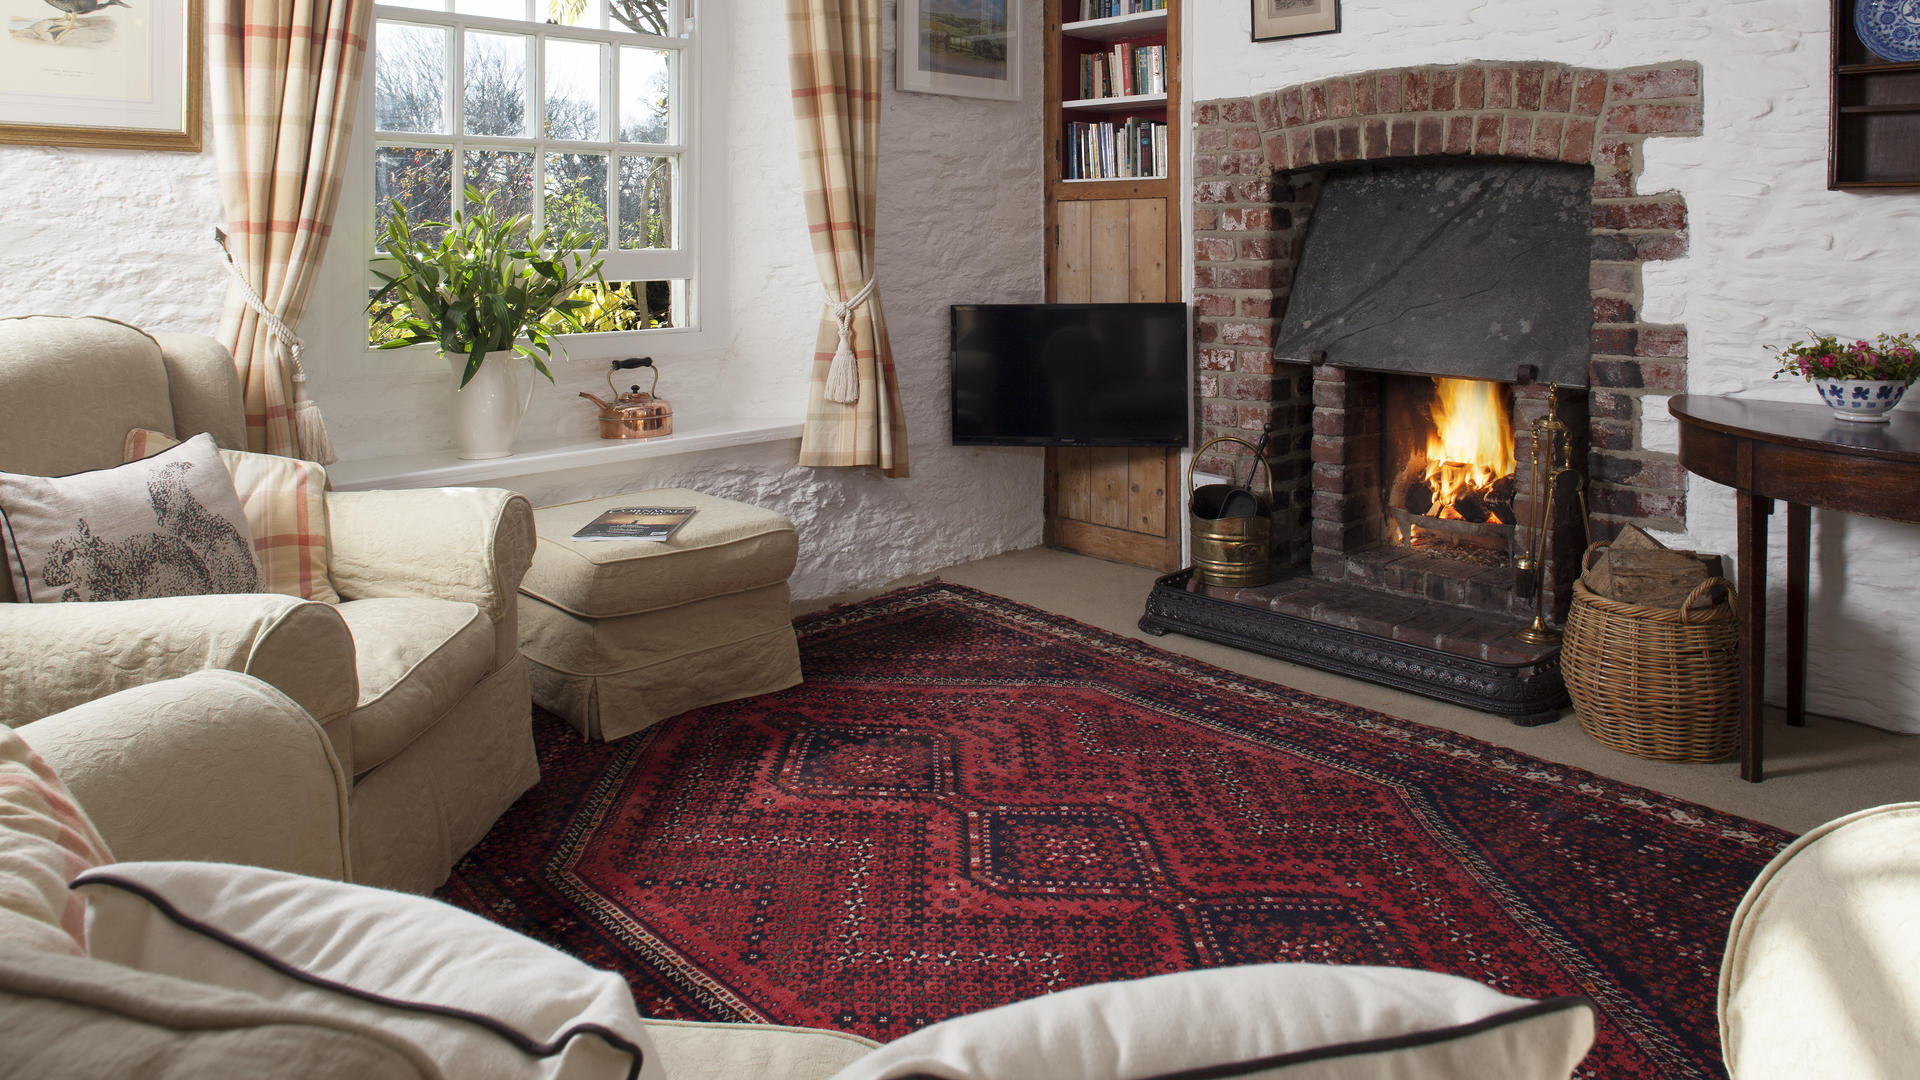 2 bedroom toddler-friendly holiday cottages Treworgey, Cornwall